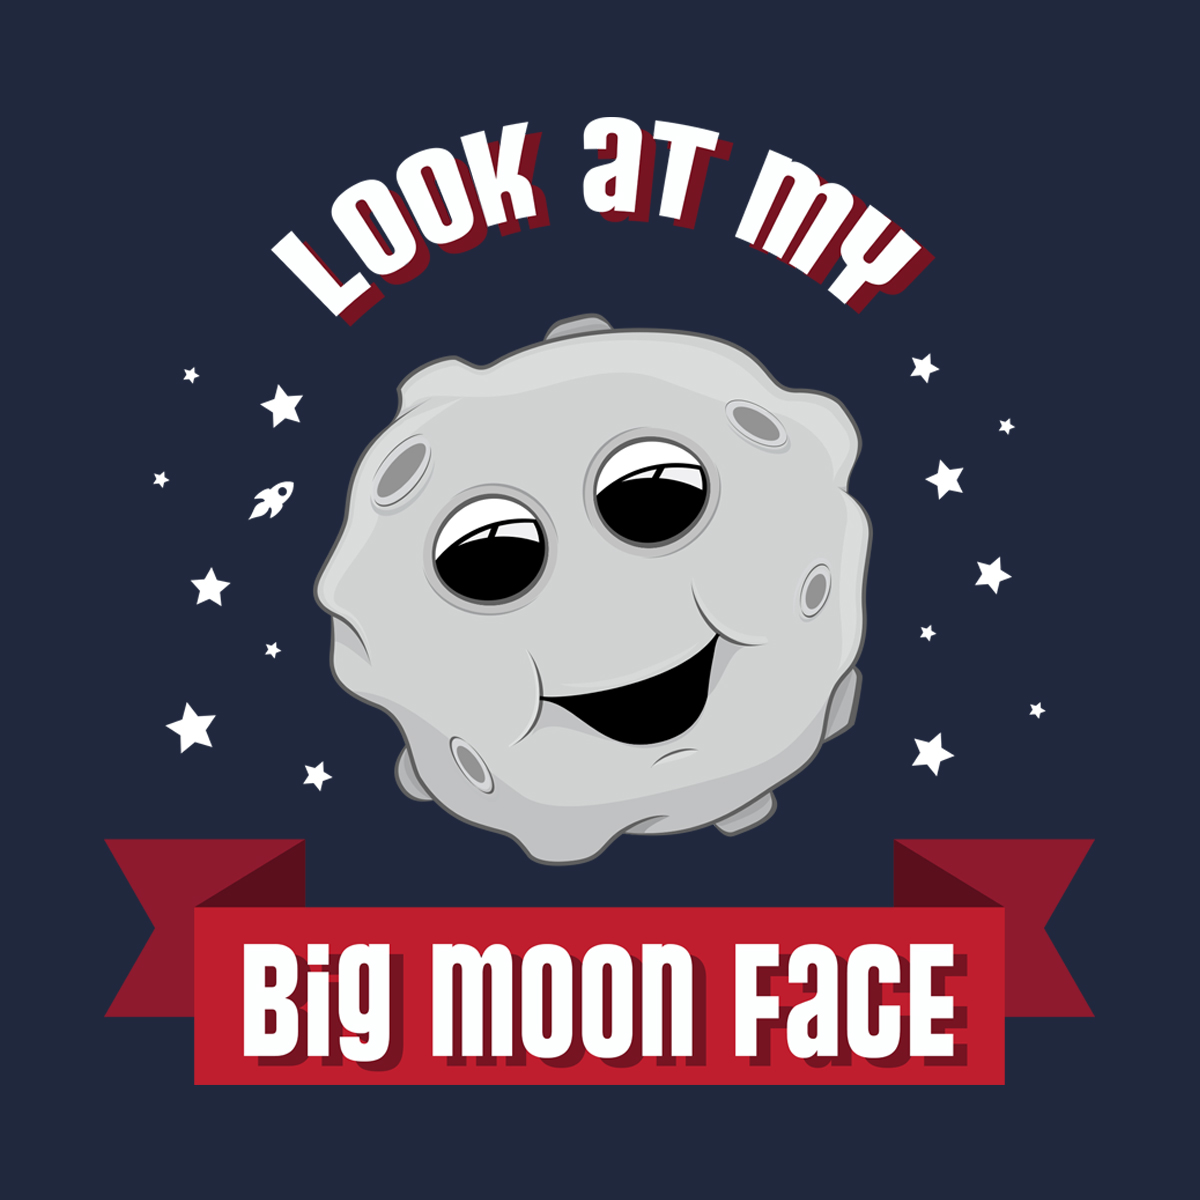 Look at my BIG MOON FACE